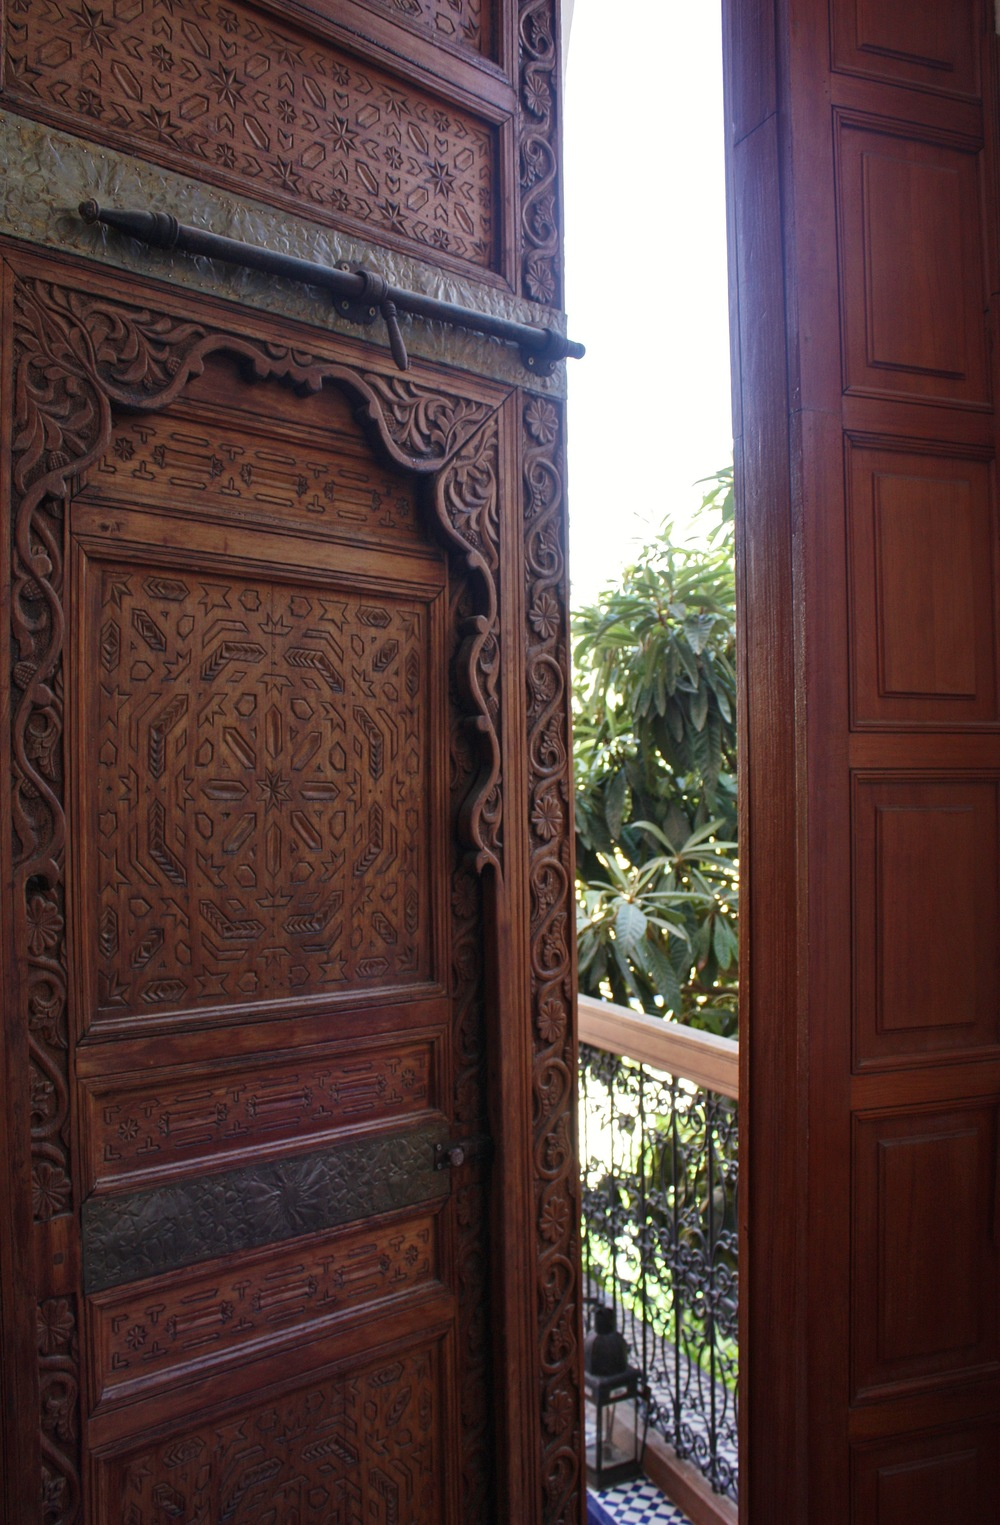 Massive wooden doors hand-carved with the Islamic star and geometric patterns characteristic of North Africa, from a riad in the old city of Fez, Morocco.